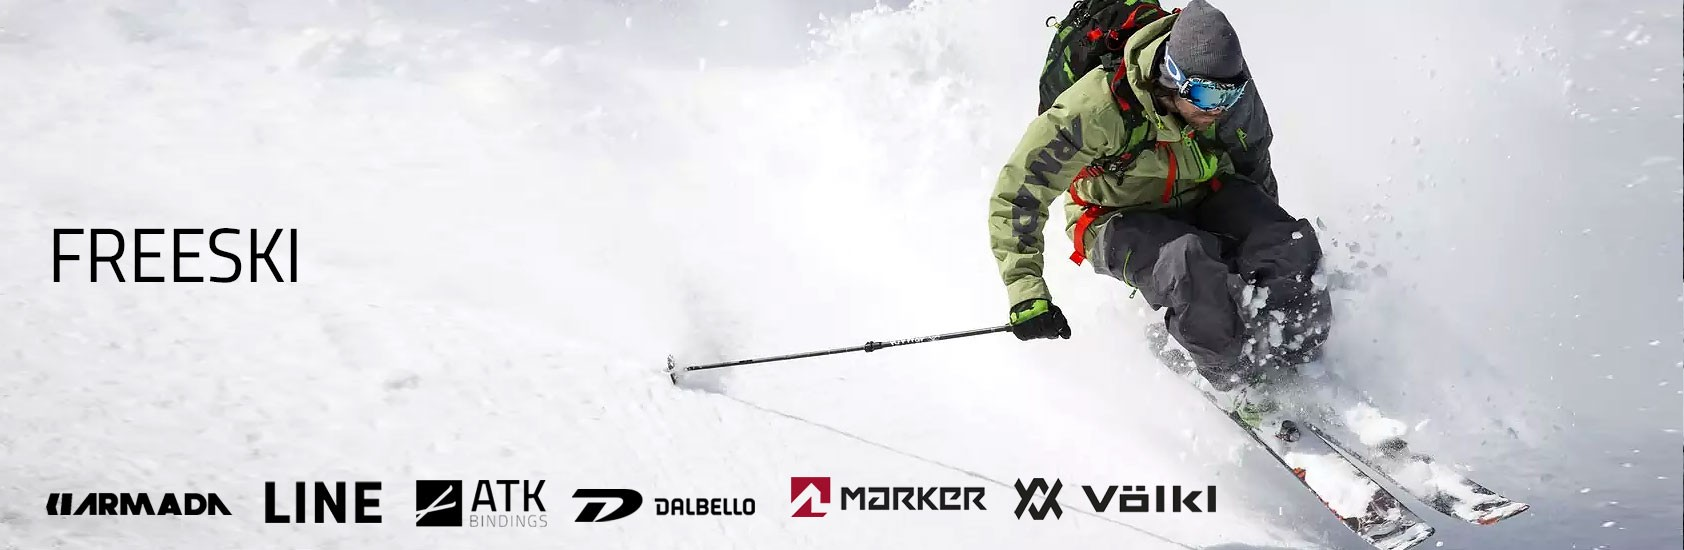 FREESKI shop on line